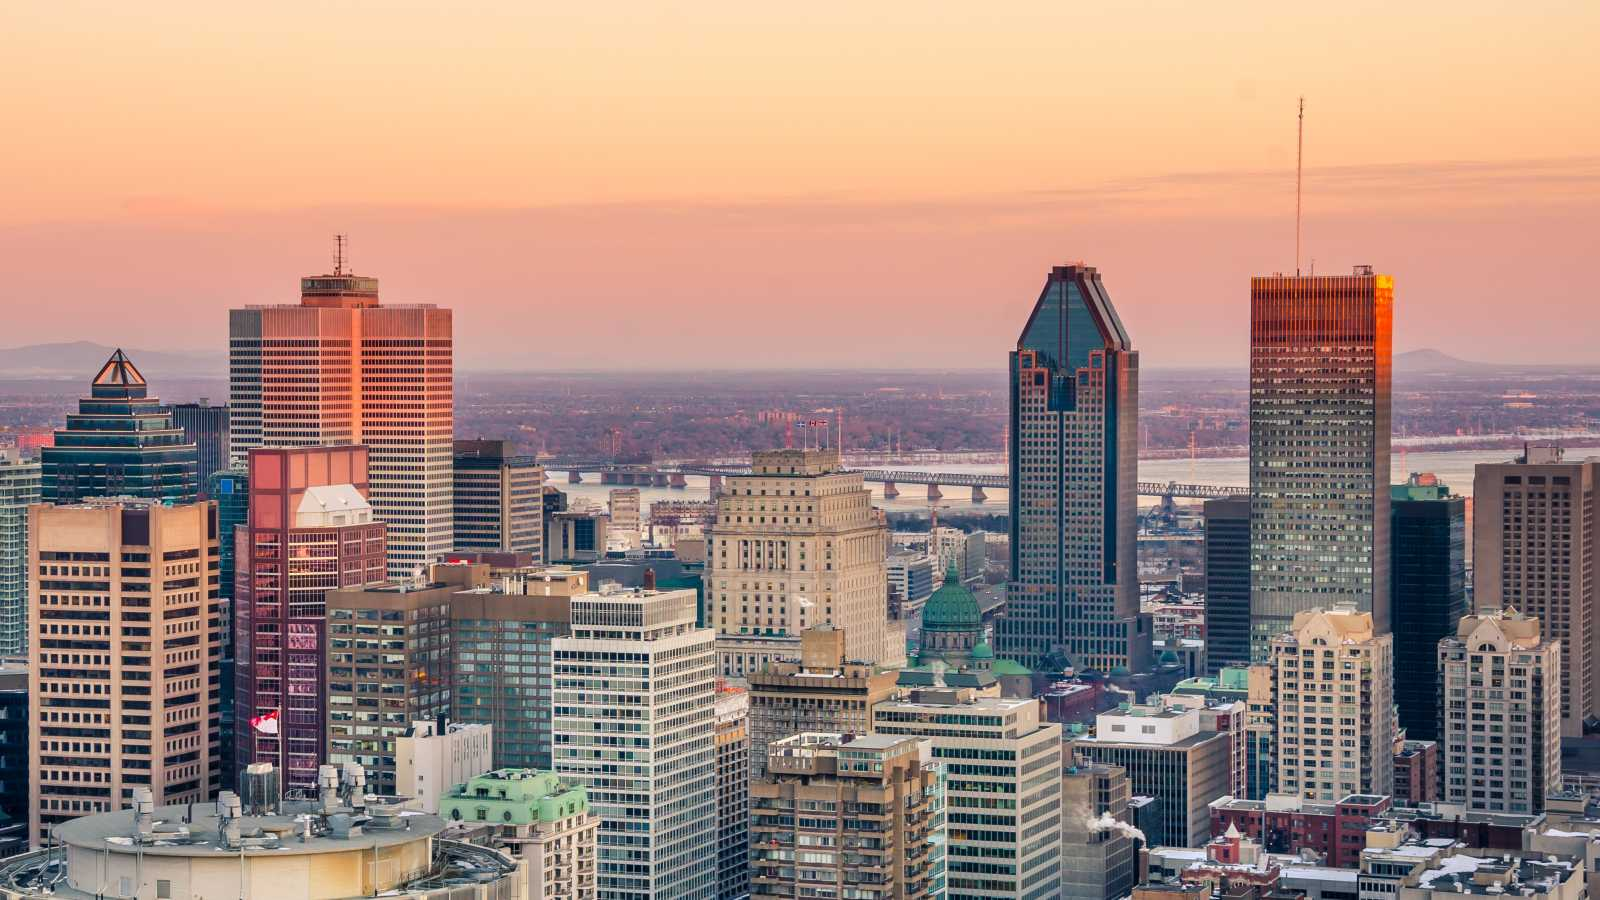 A view over Montreal at sunset